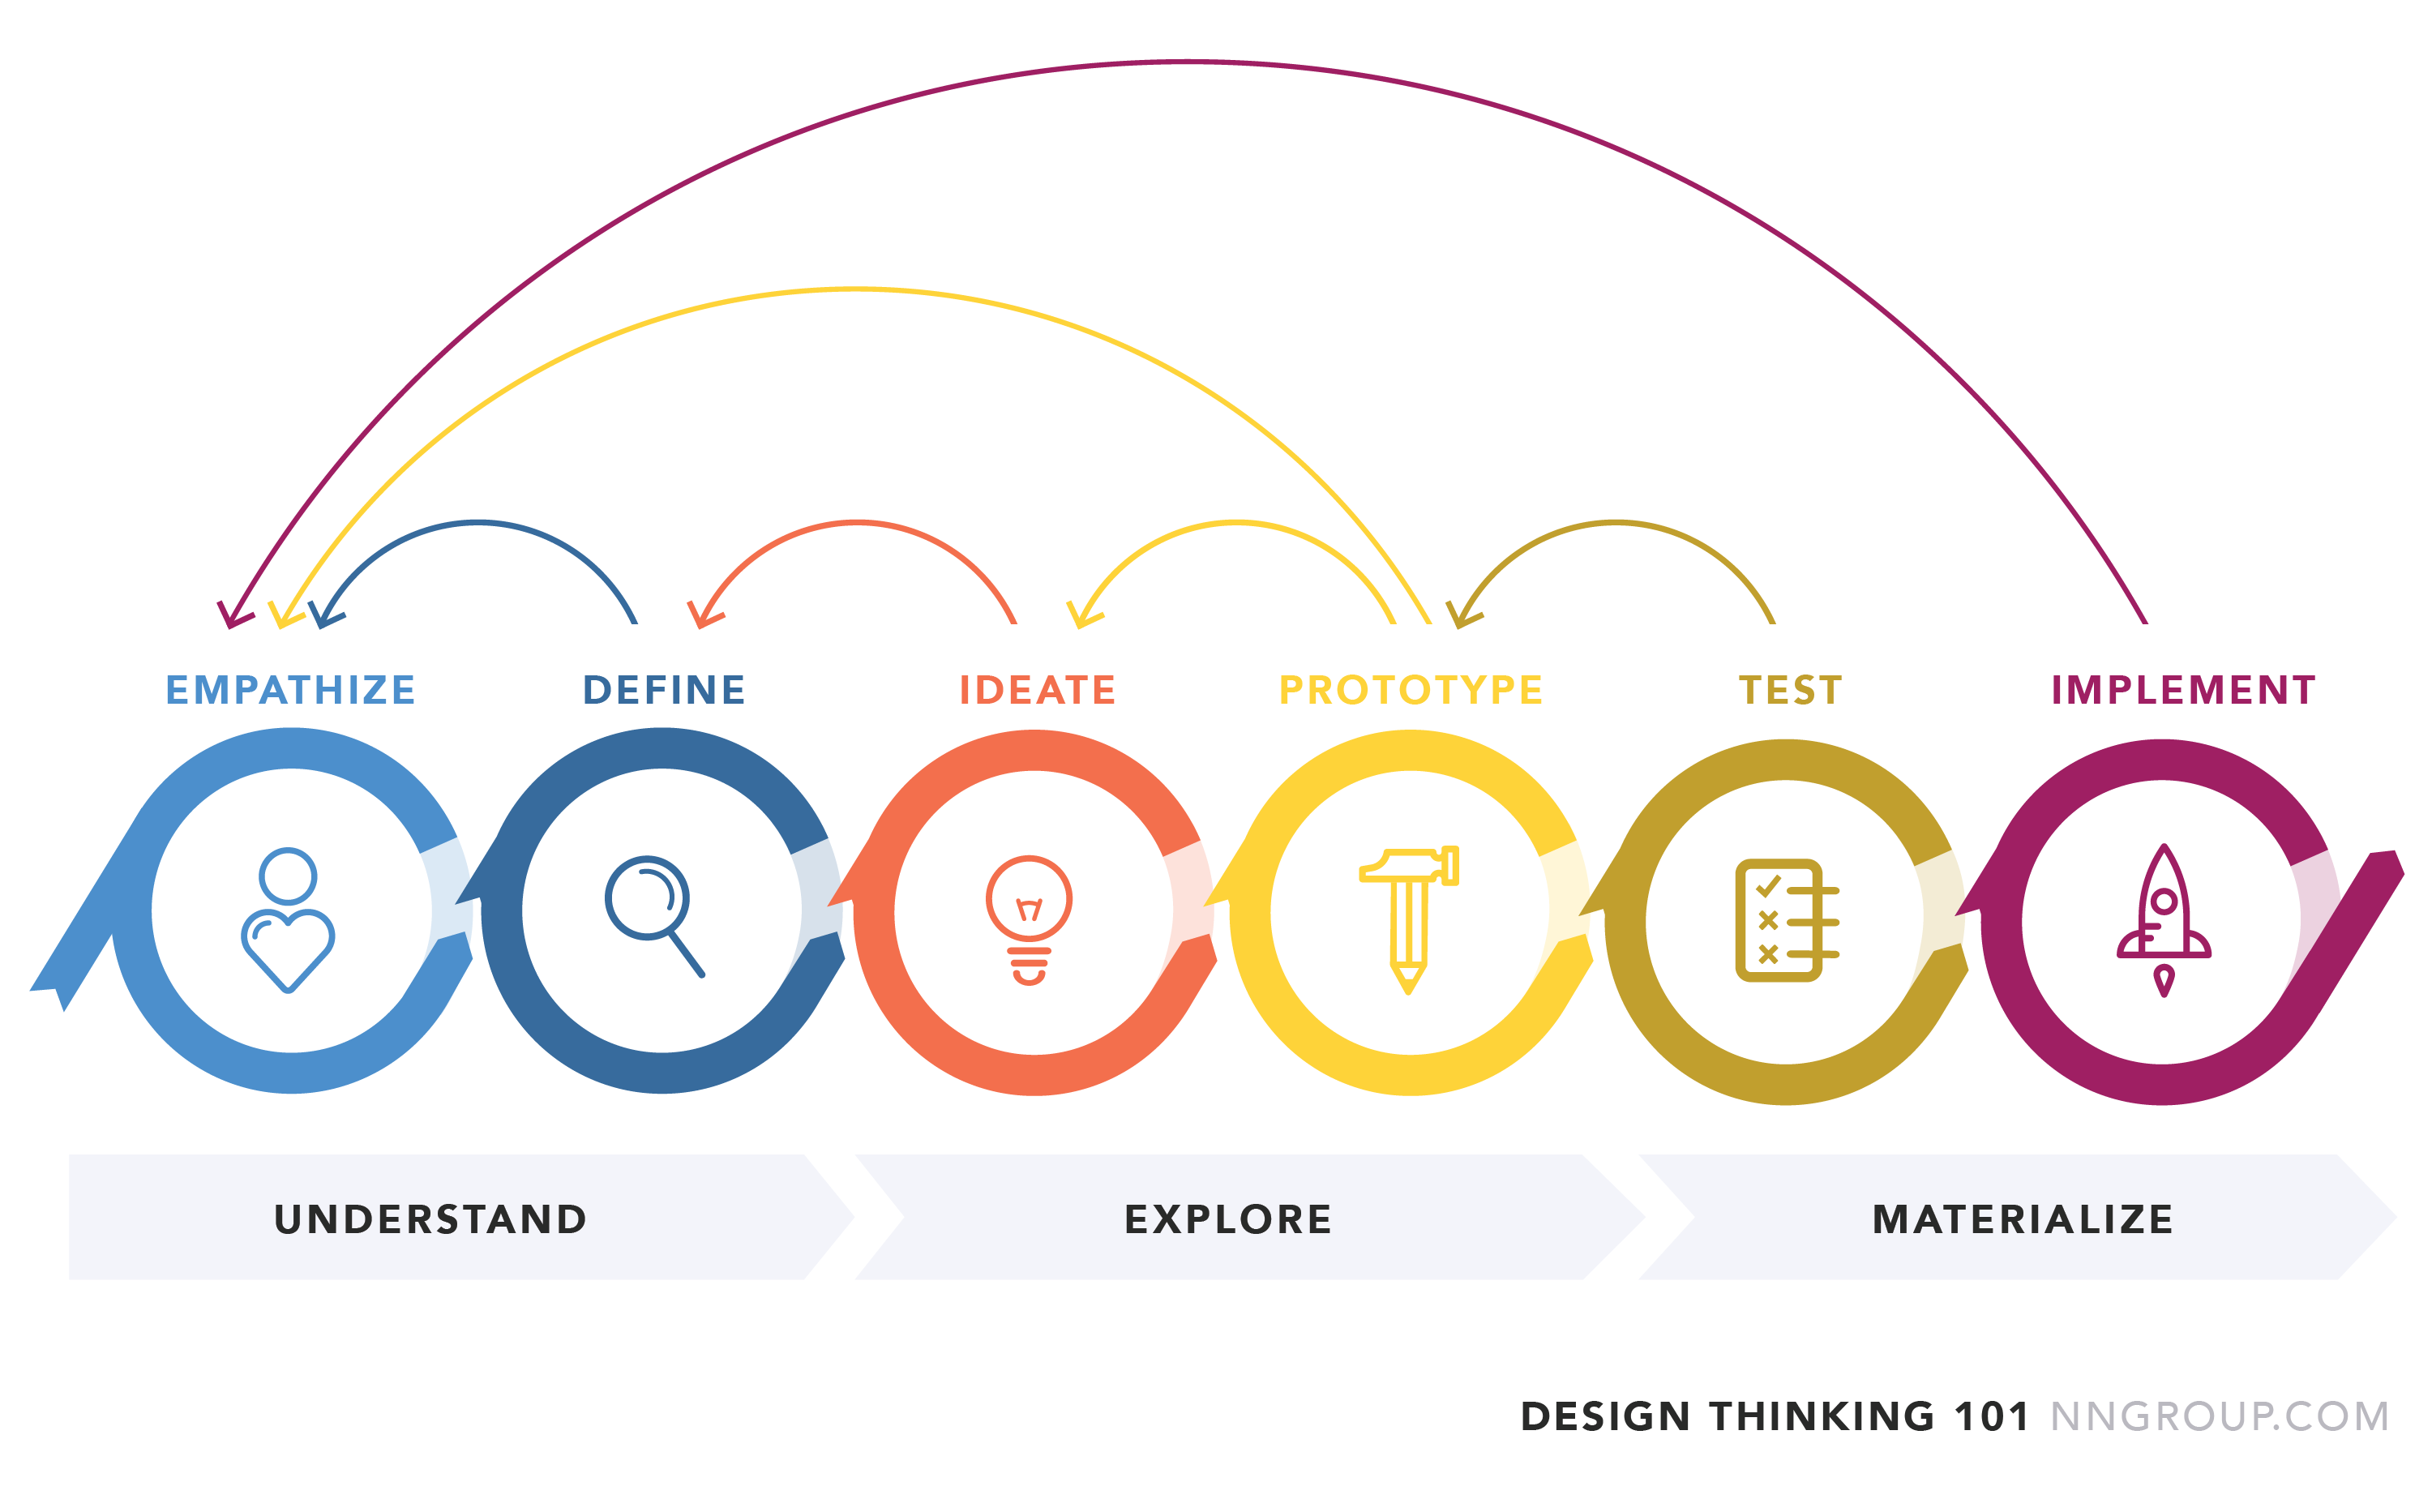 Irving Rivera On In 2020 Design Thinking What Is Design Design Thinking Process